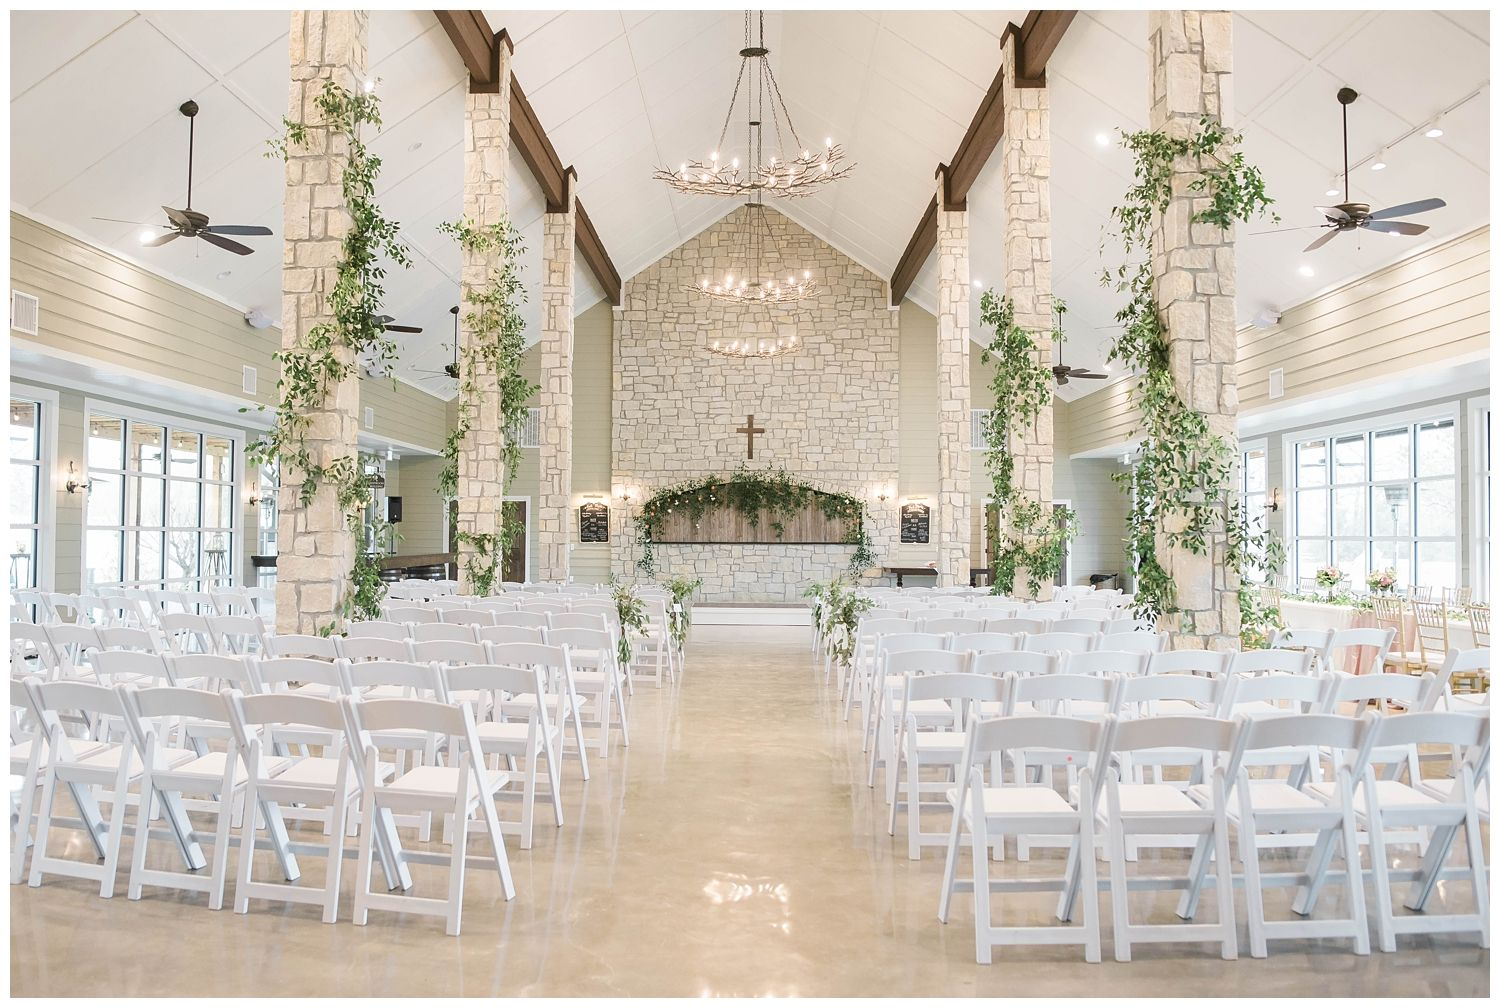 This Bryan, Texas Wedding Venue is perfect for any style